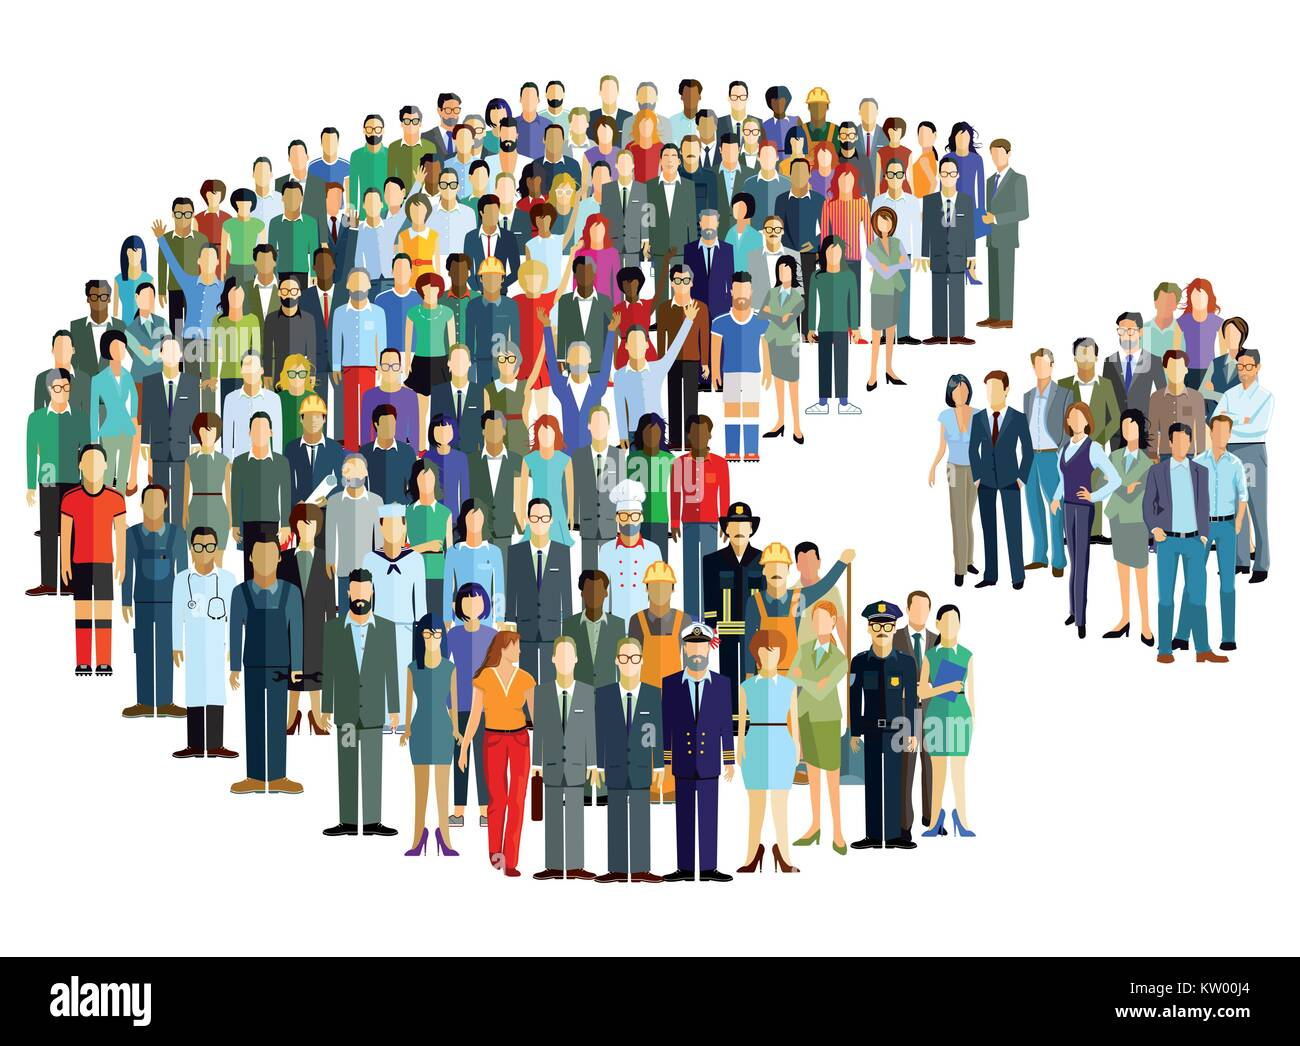 Groups of people statistics, crowd community, Illustration - Stock Image